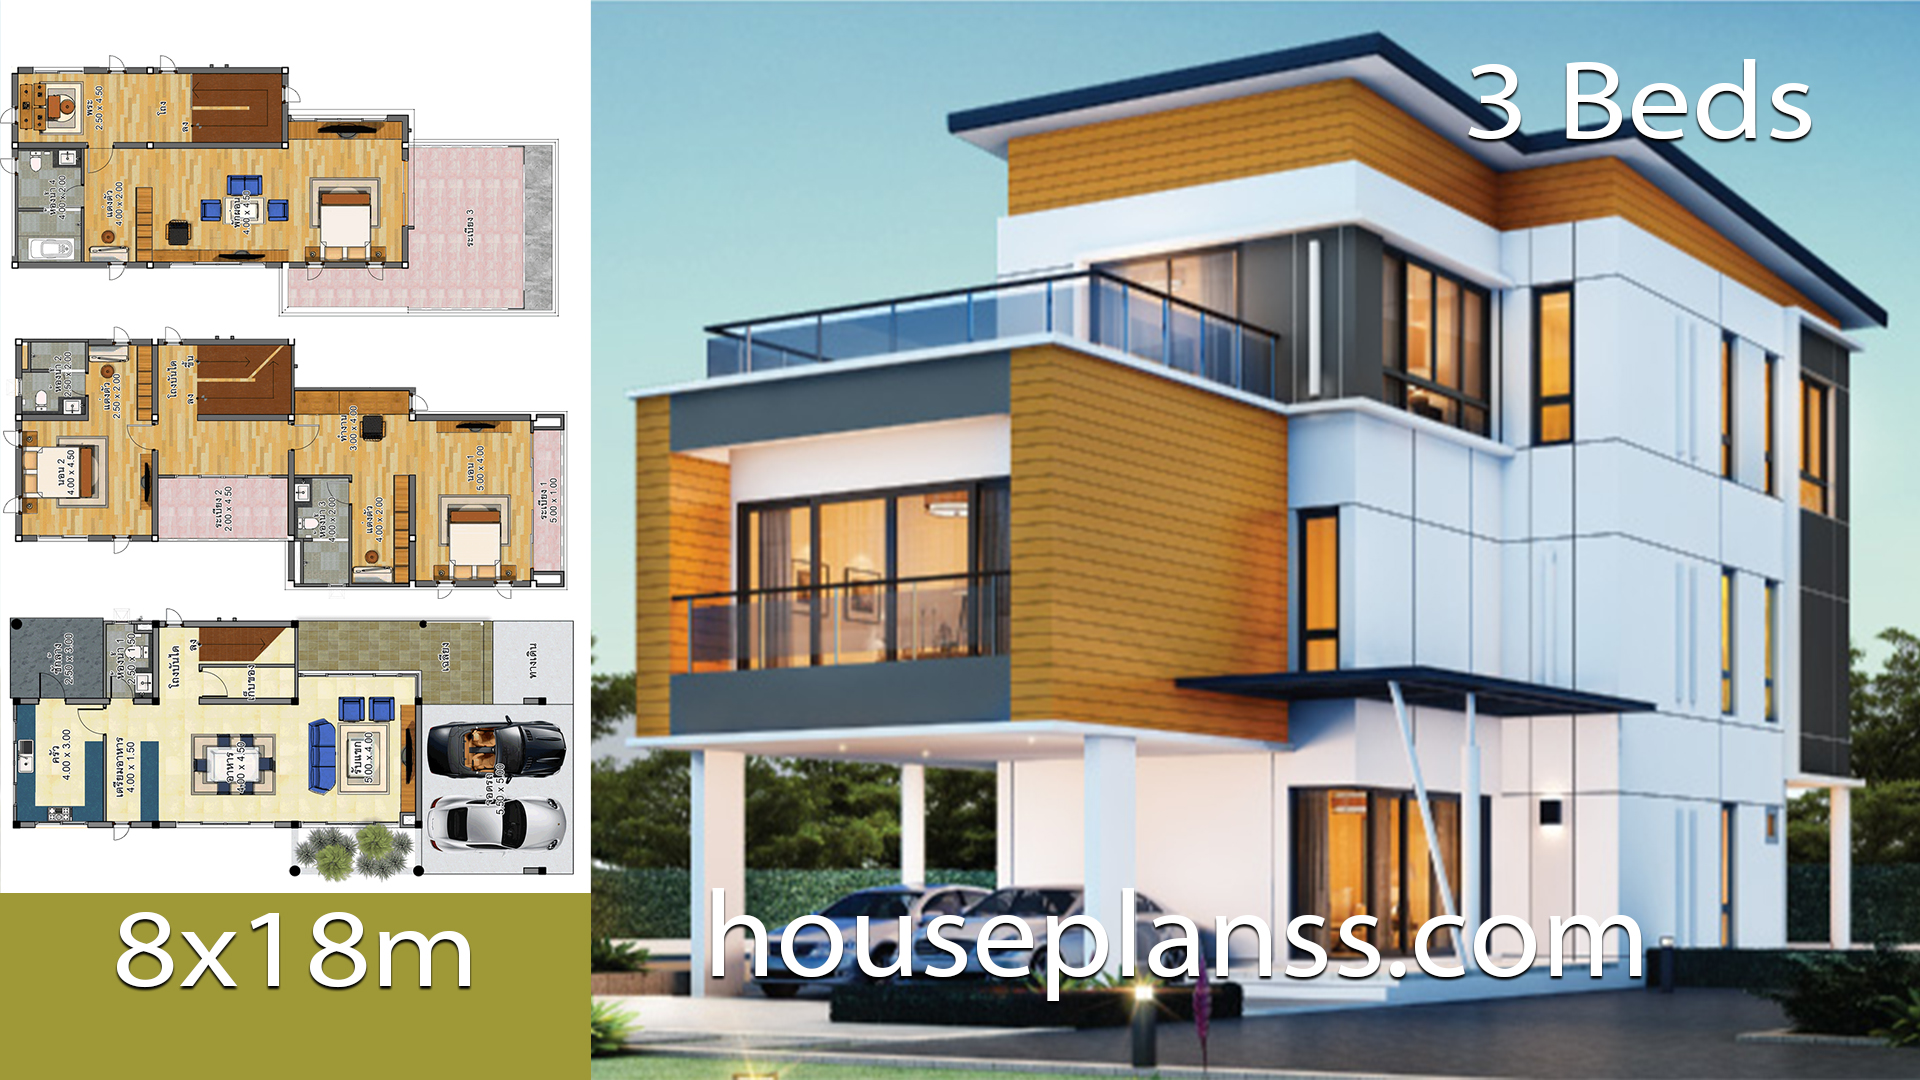 House design idea 8×18 with 3 bedrooms